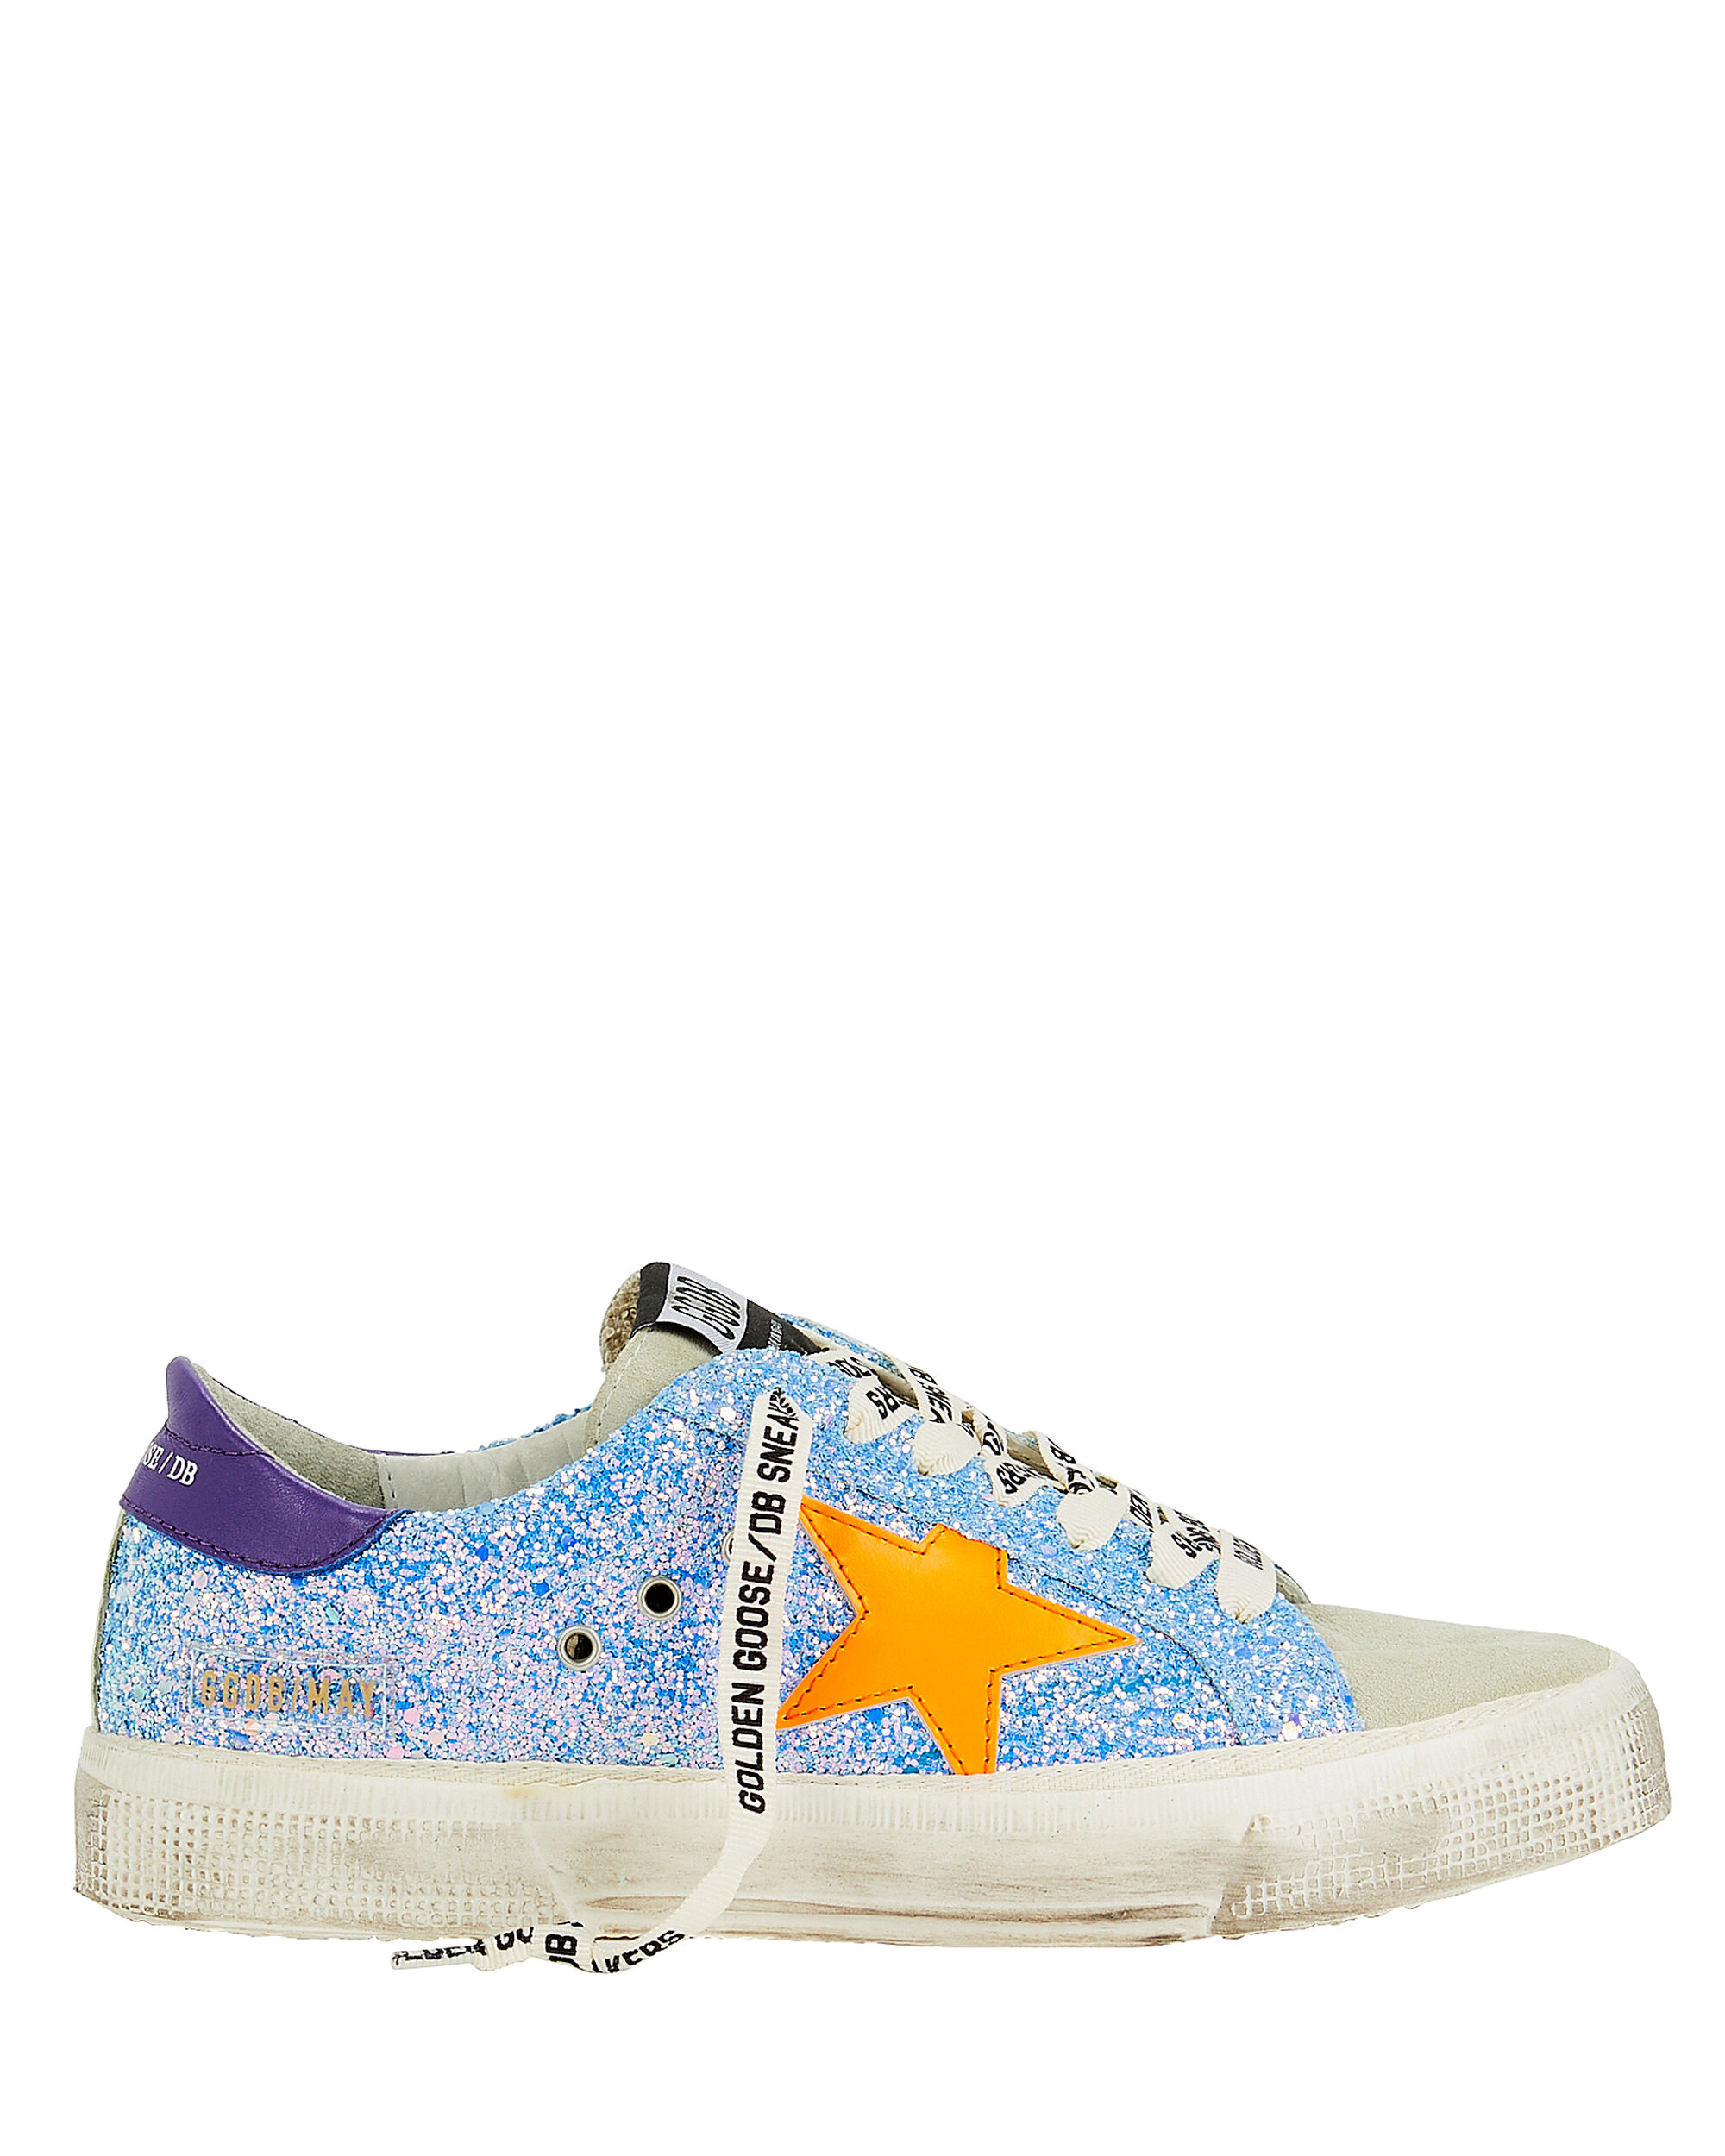 May Orange Star Glitter Low-Top Sneakers, LIGHT BLUE, hi-res